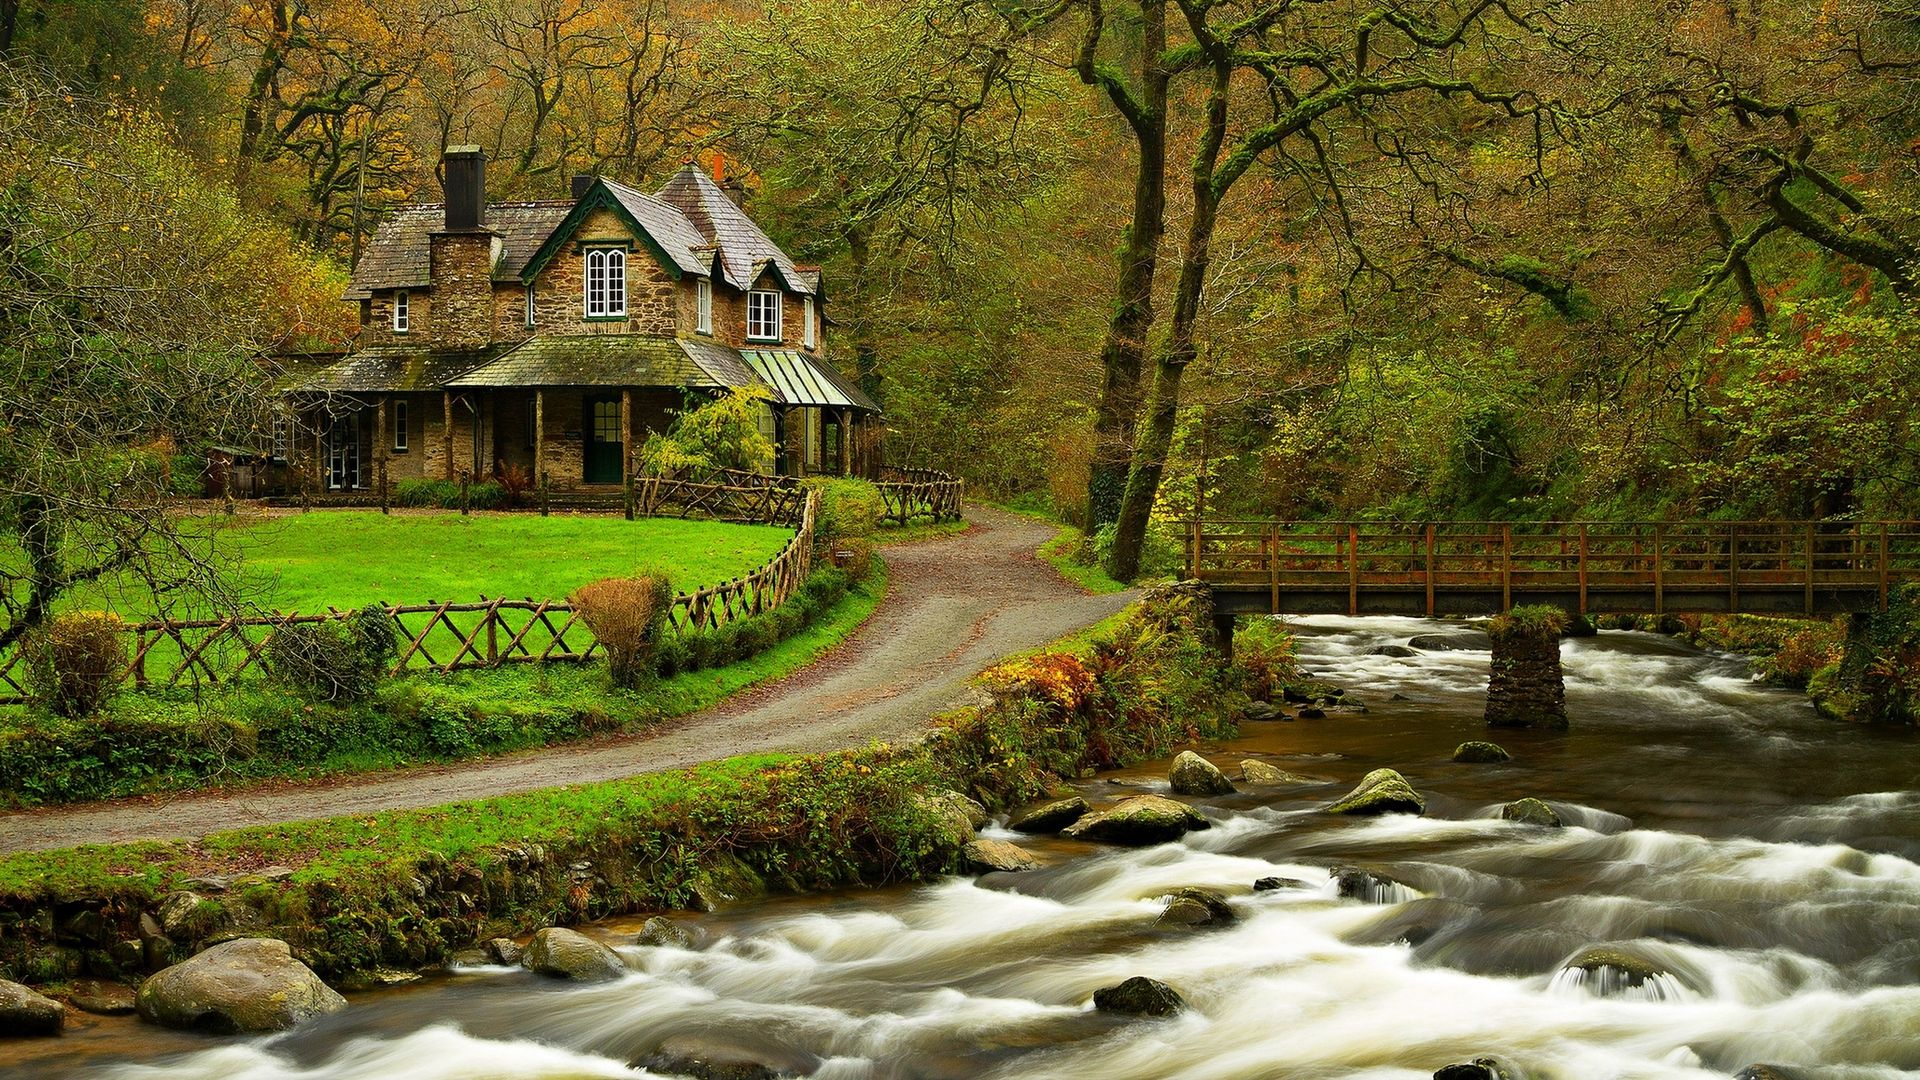 House In The Woods For 1920 X 1080 Hdtv 1080p Resolution In 2020 House In The Woods Scenery River House